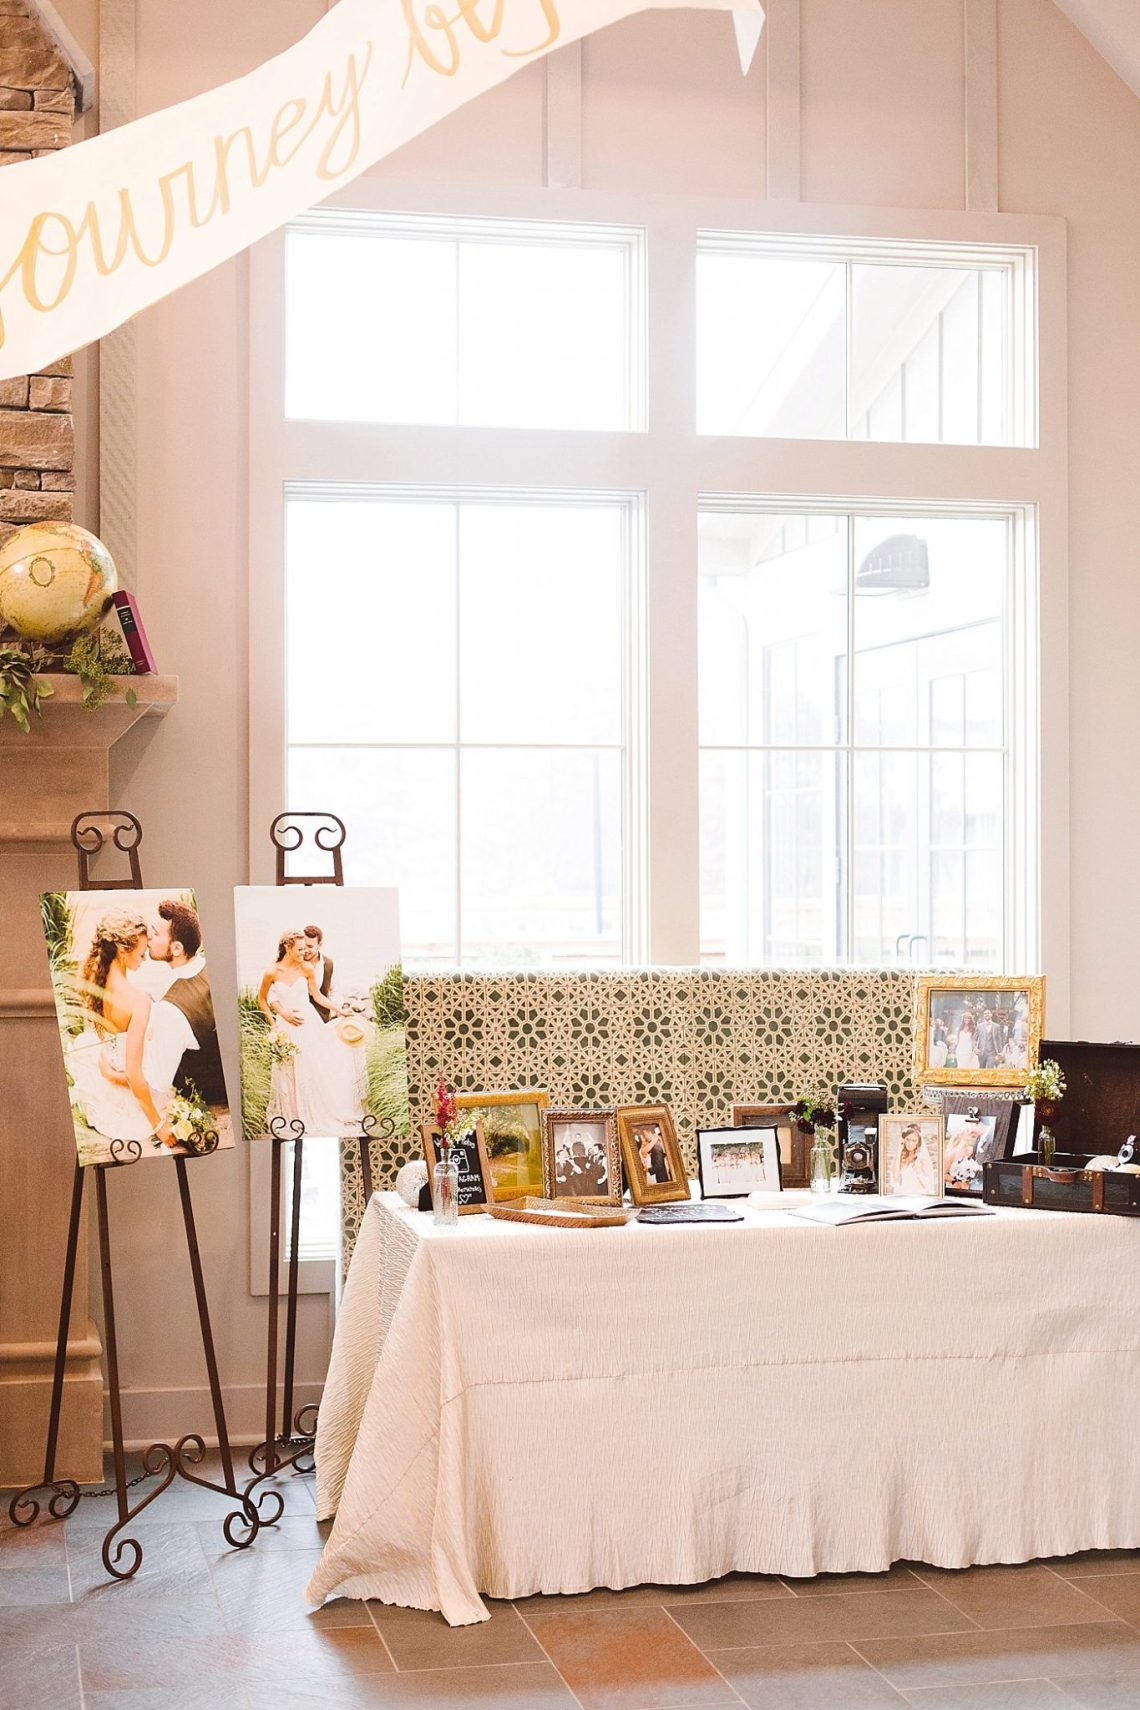 7 Tips for Rocking a Bridal Show   via the Rising Tide Society